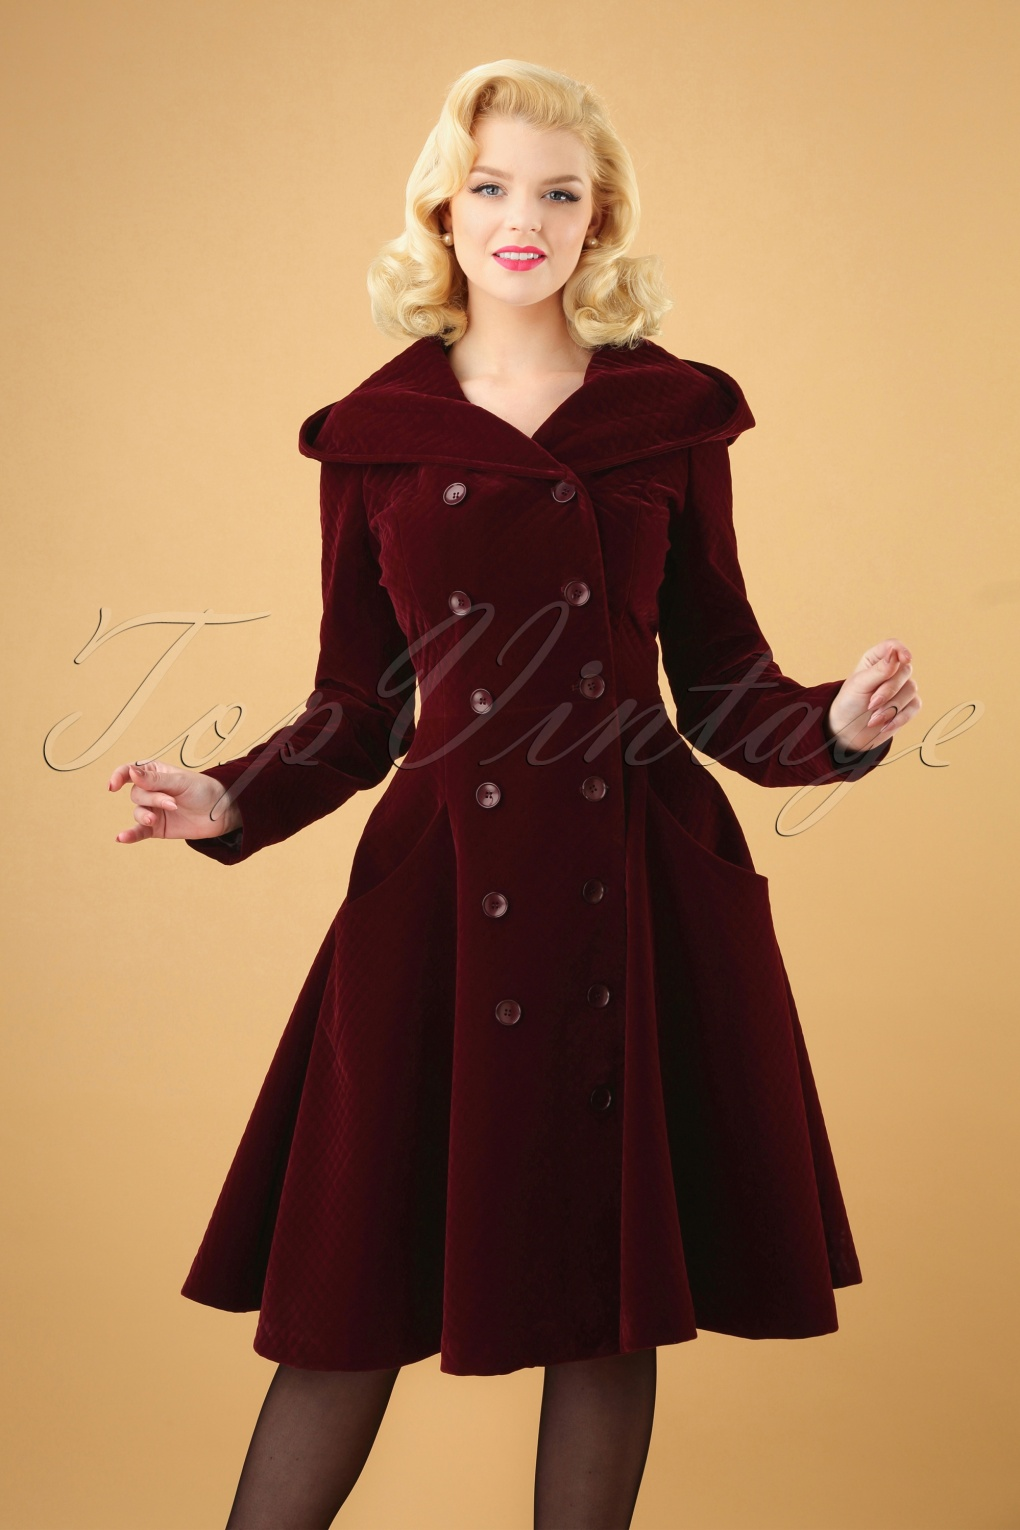 Vintage Coats & Jackets | Retro Coats and Jackets 50s Heather Hooded Quilted Velvet Coat in Wine £166.08 AT vintagedancer.com